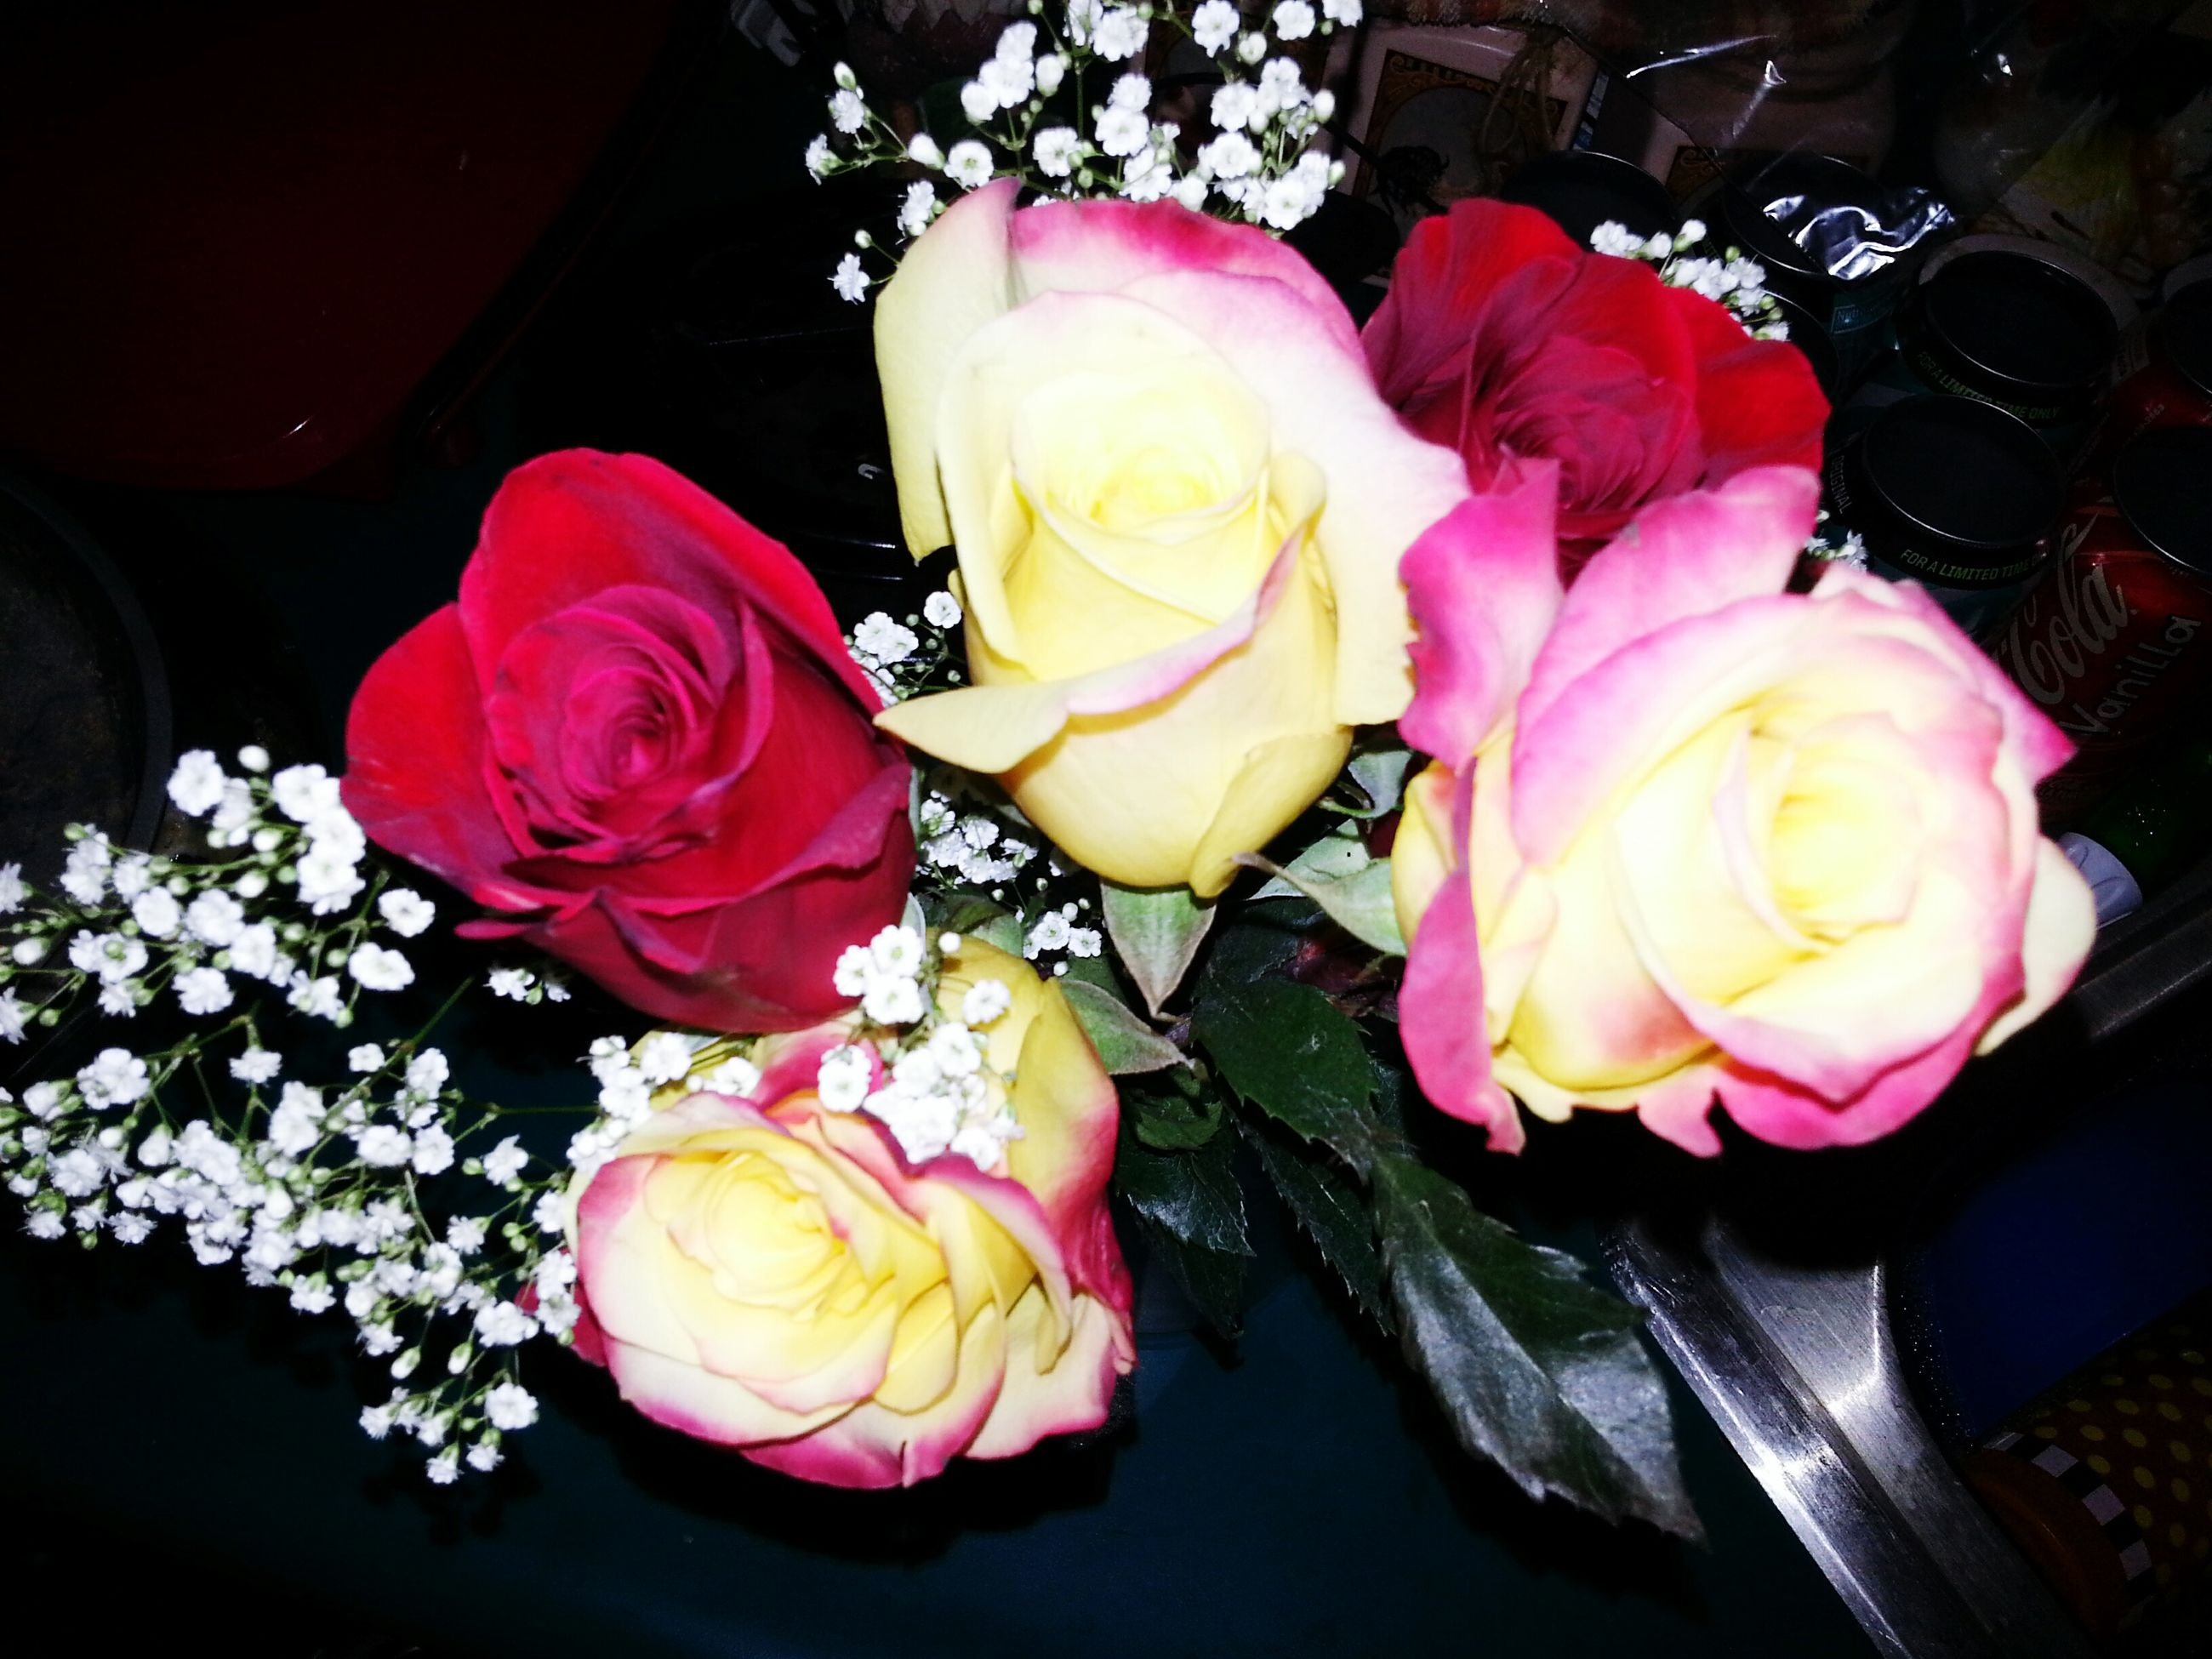 flower, rose - flower, petal, freshness, flower head, fragility, rose, indoors, beauty in nature, bouquet, vase, close-up, pink color, bunch of flowers, high angle view, flower arrangement, nature, blooming, table, decoration